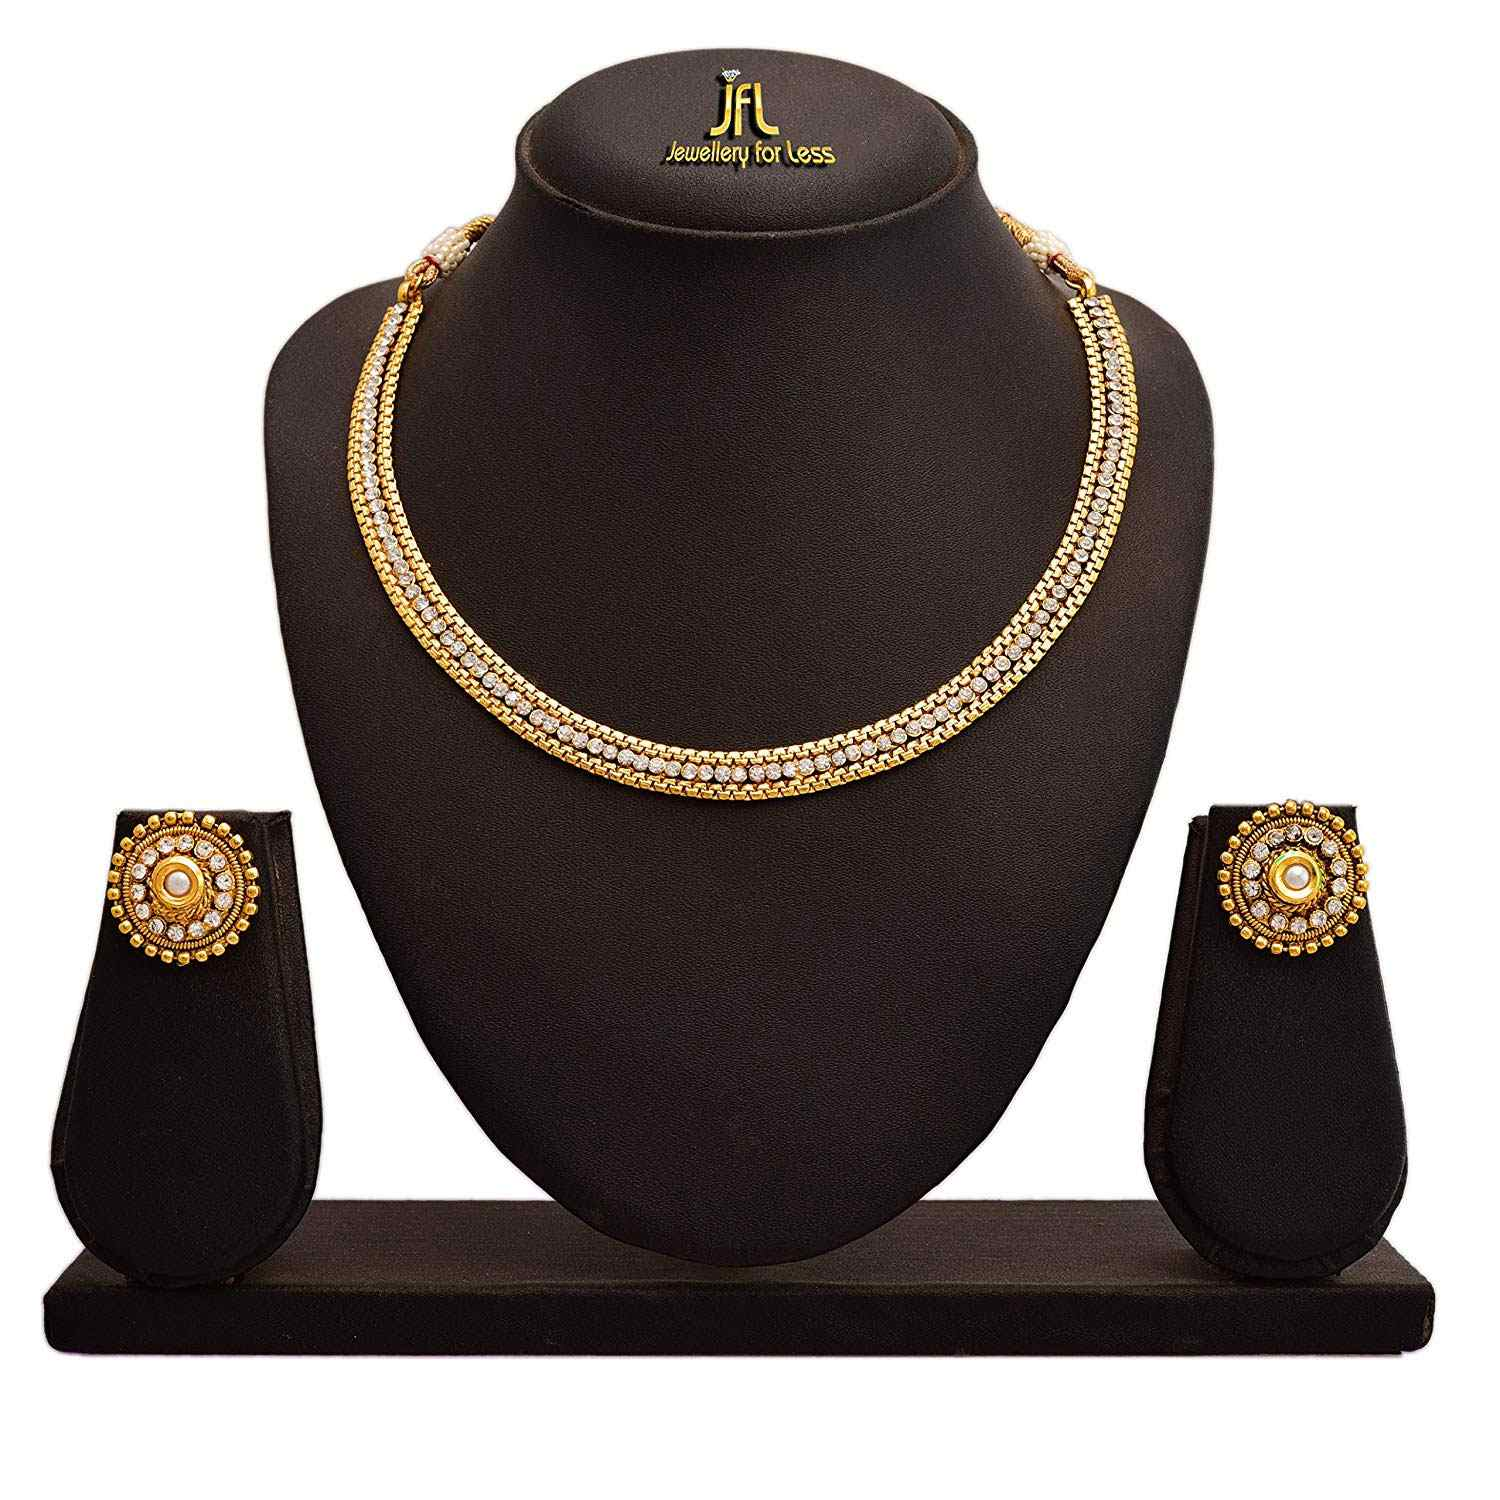 JFL - Traditional Ethnic One Gram Gold Plated Diamond Designer Necklace Set for Women.